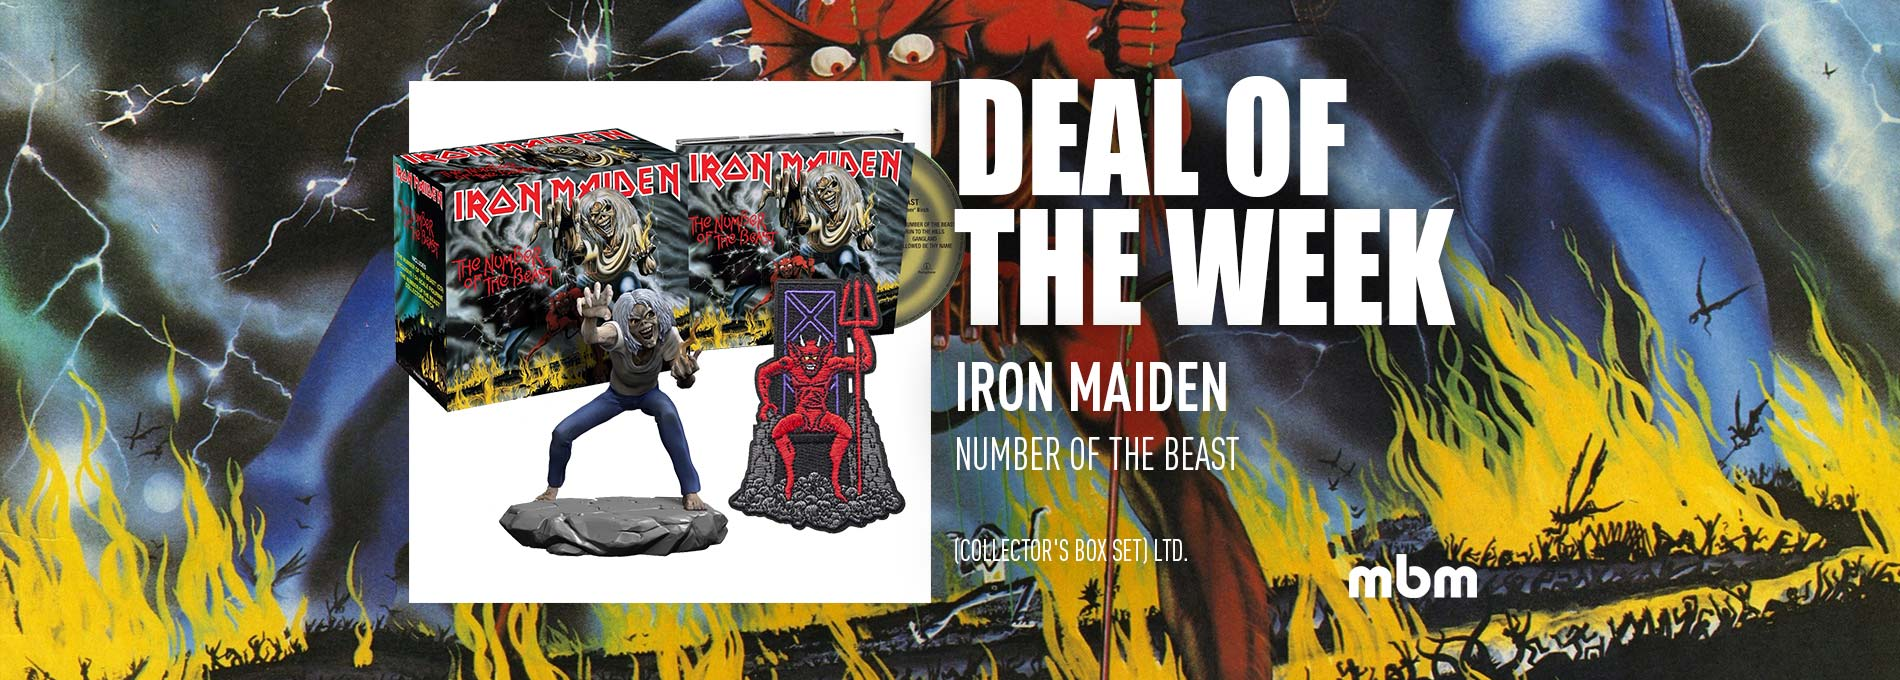 Deal Of The Week: IRON MAIDEN - Number Of The Beast / Ltd. Collectors Box Set